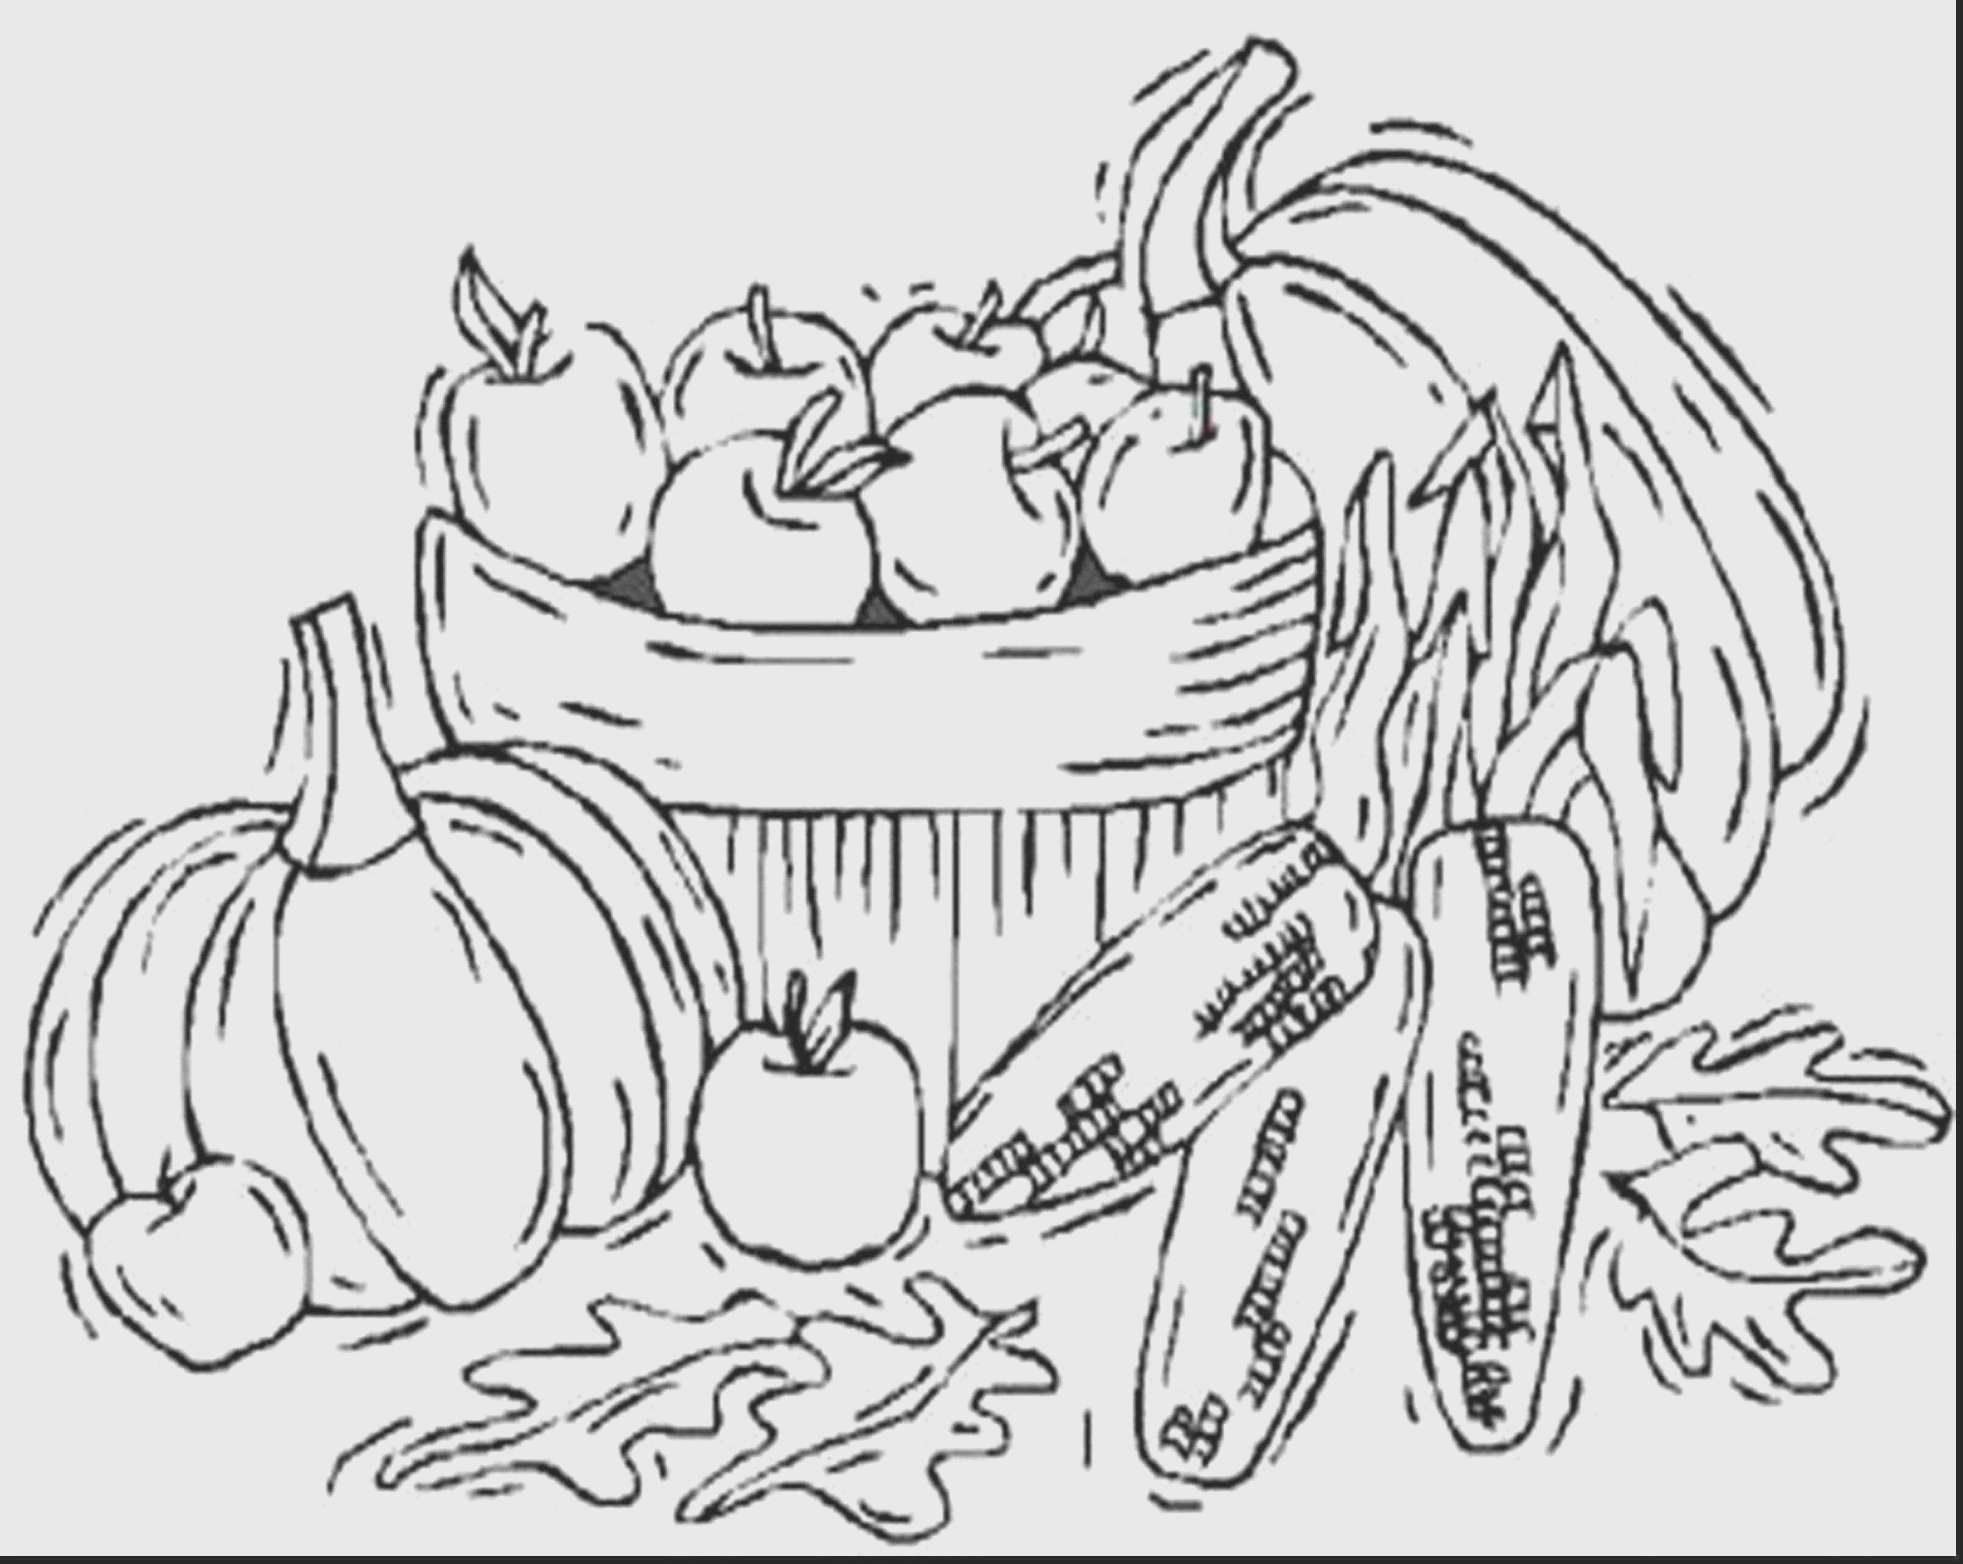 Coloring Activities Printable Inspirational Coloring And Painting Toiyeuemz Fall Coloring Pages Pumpkin Coloring Pages Animal Coloring Pages